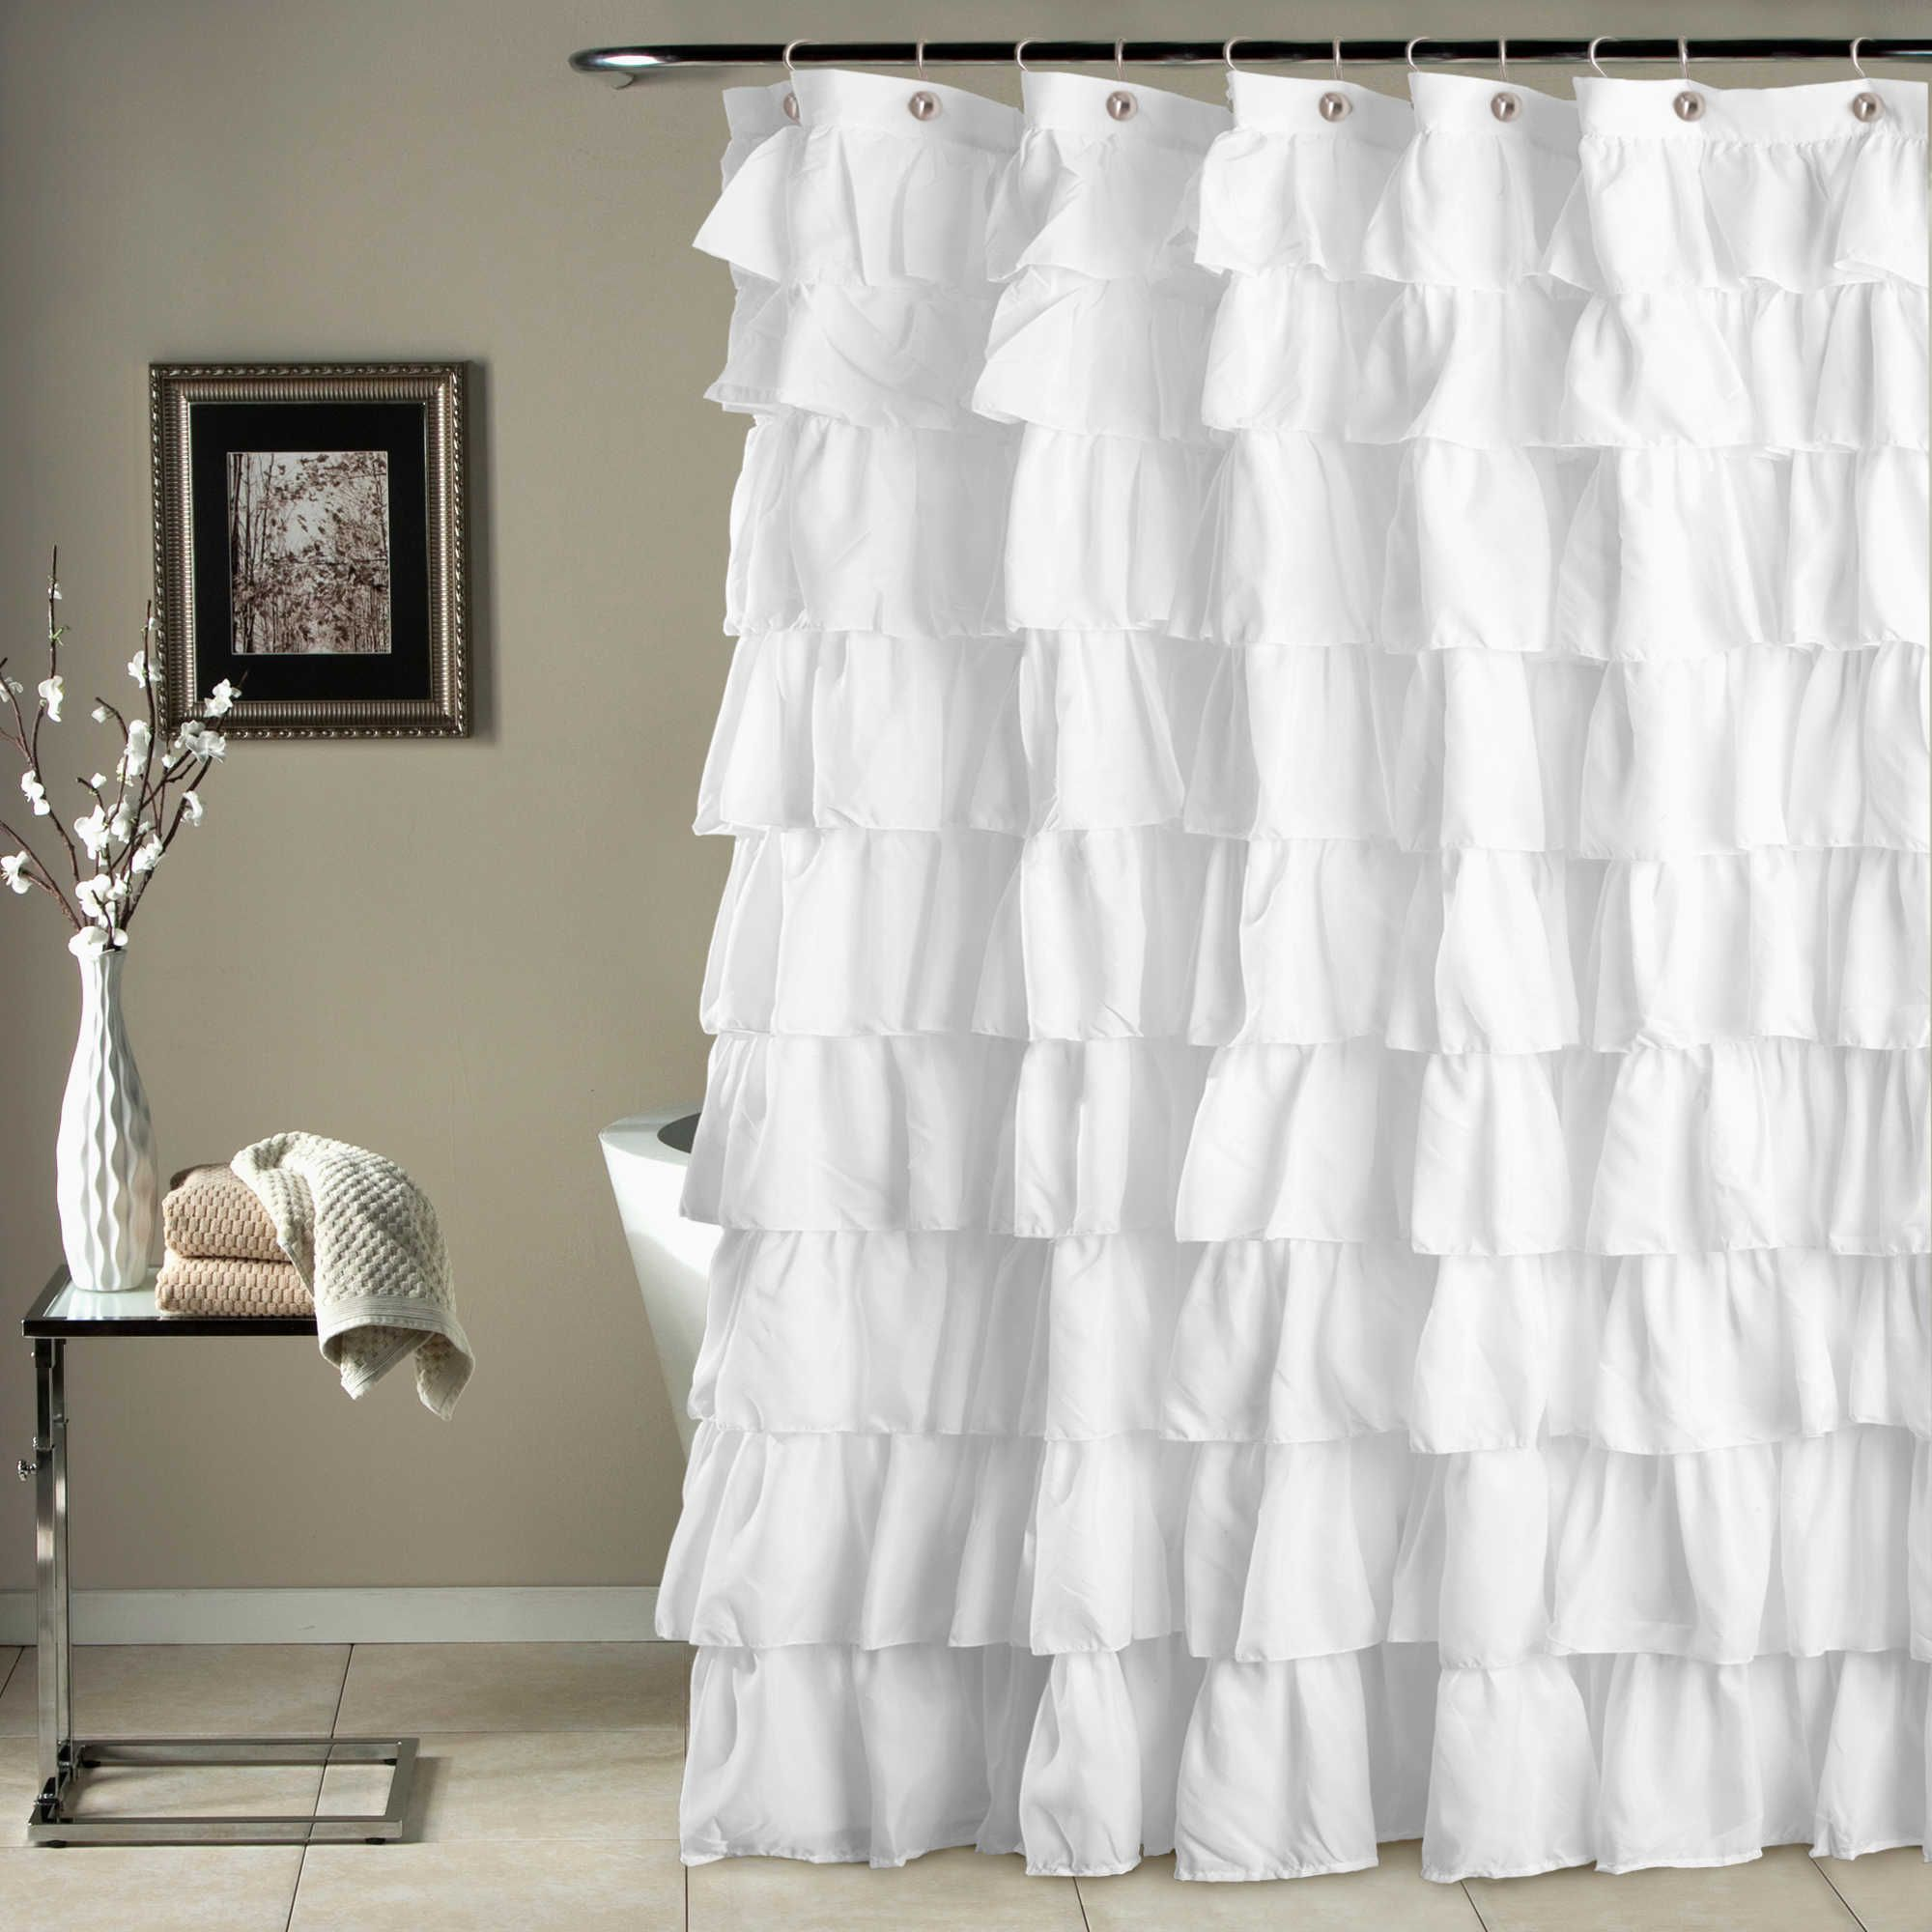 Would Be Even Better In Ruffled White Lace Ruffle Shower Curtain